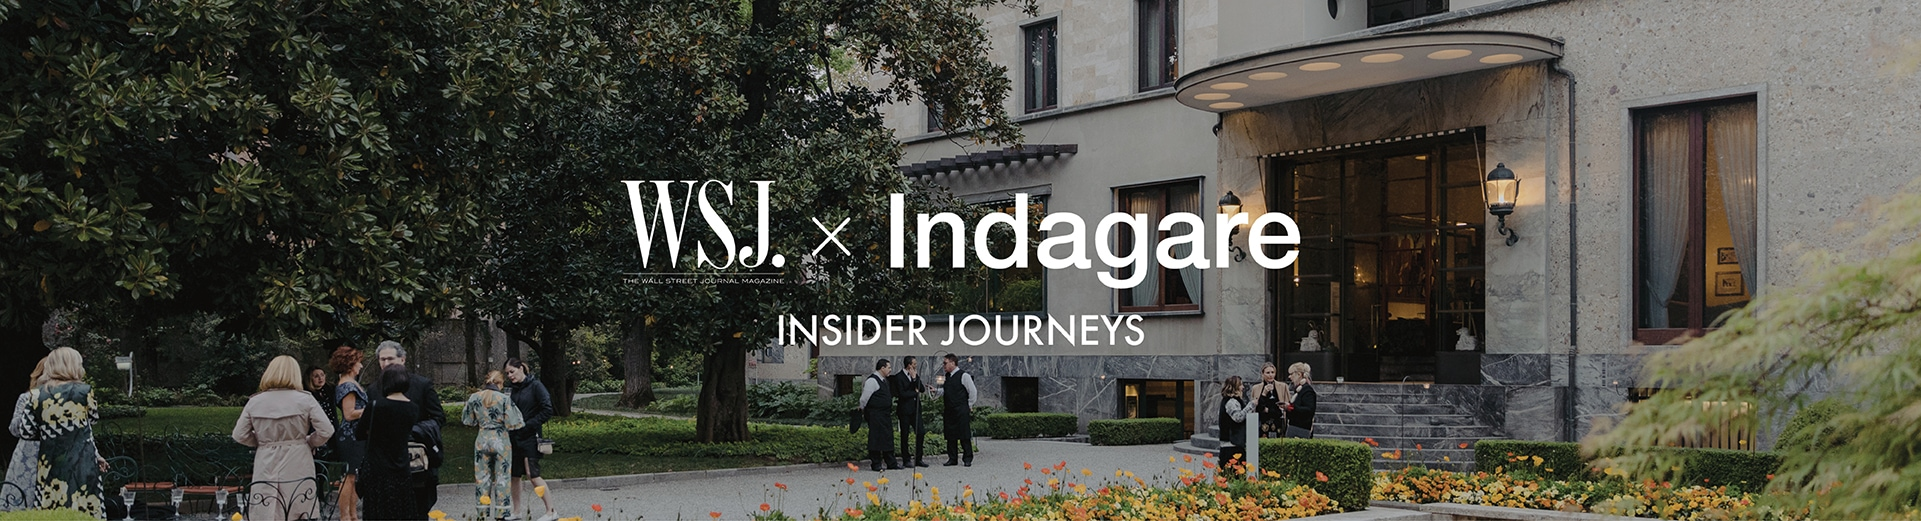 wsj magazine x indagare insider journeys